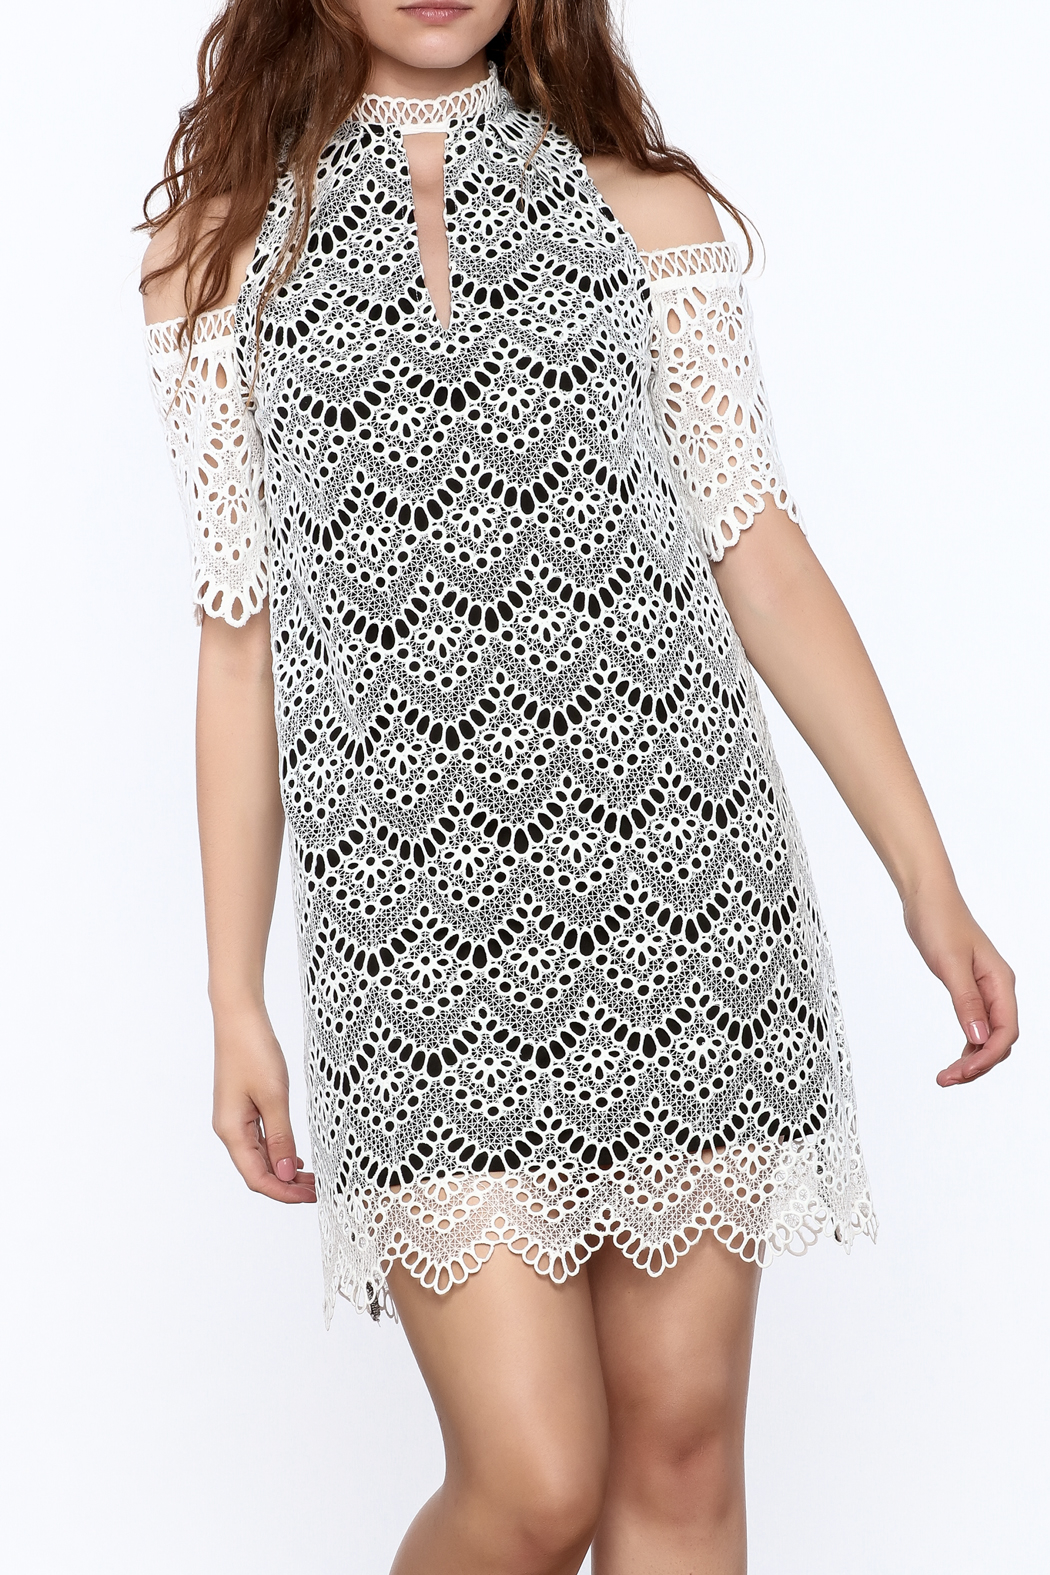 KAS New York Semi Lined Lace Dress - Main Image